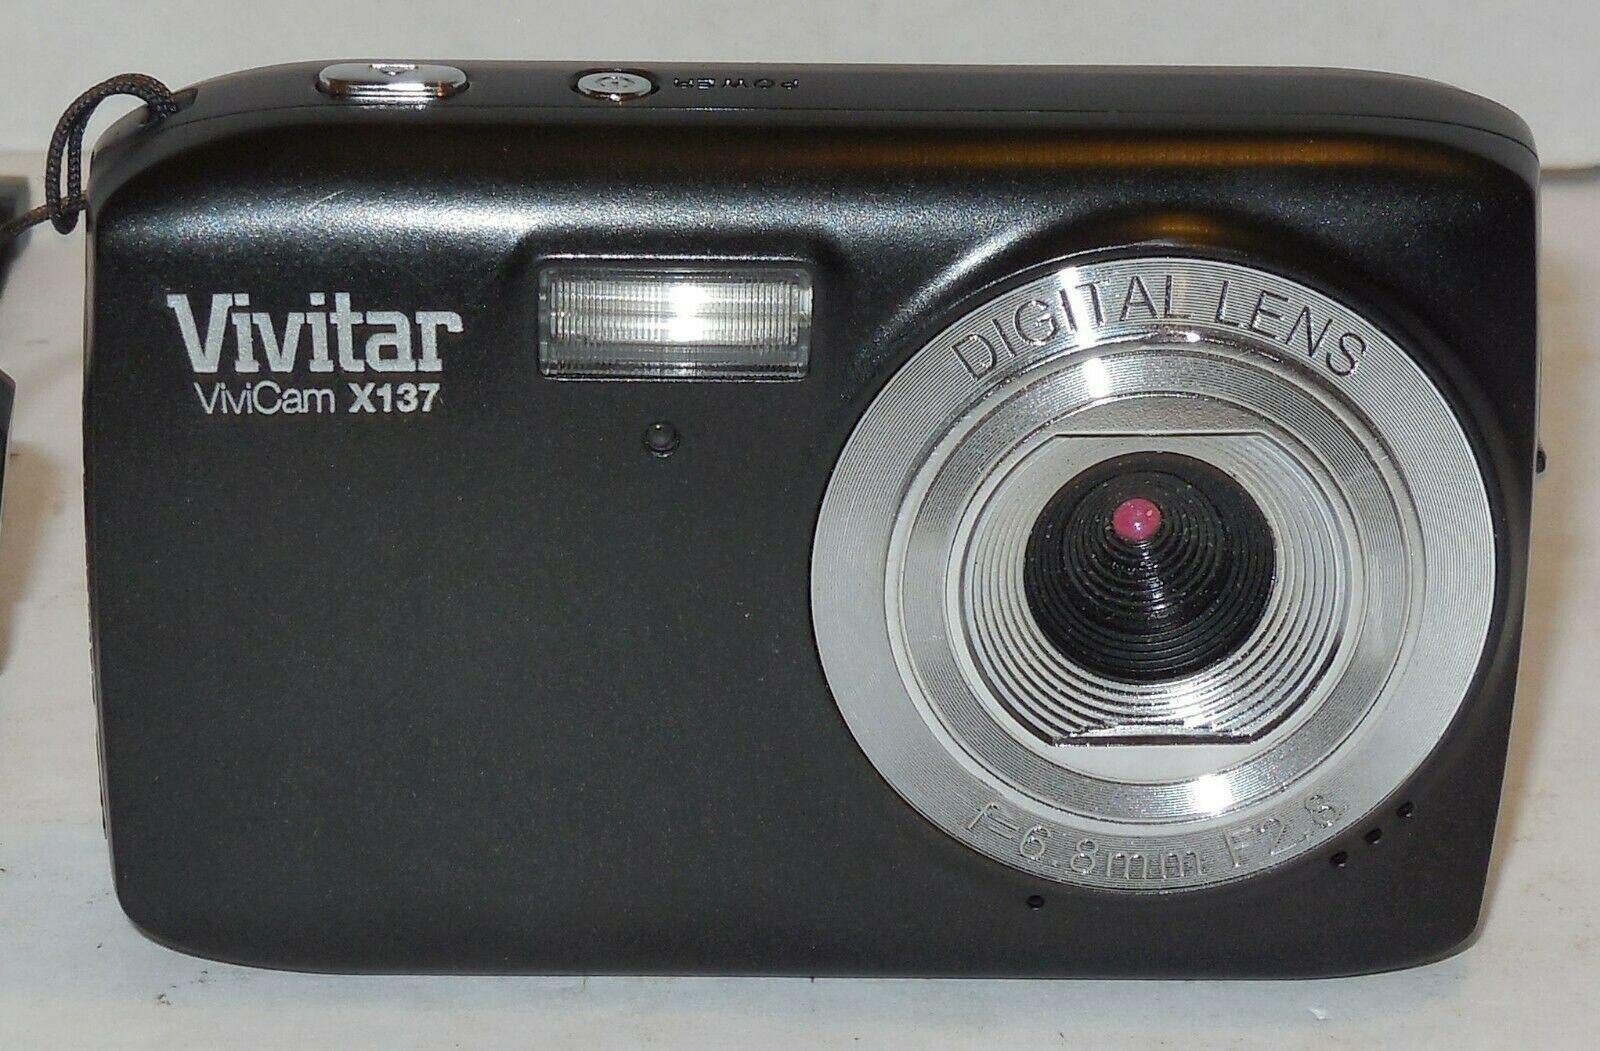 Primary image for Vivitar ViviCam X137 10.1MP Digital Camera - Black